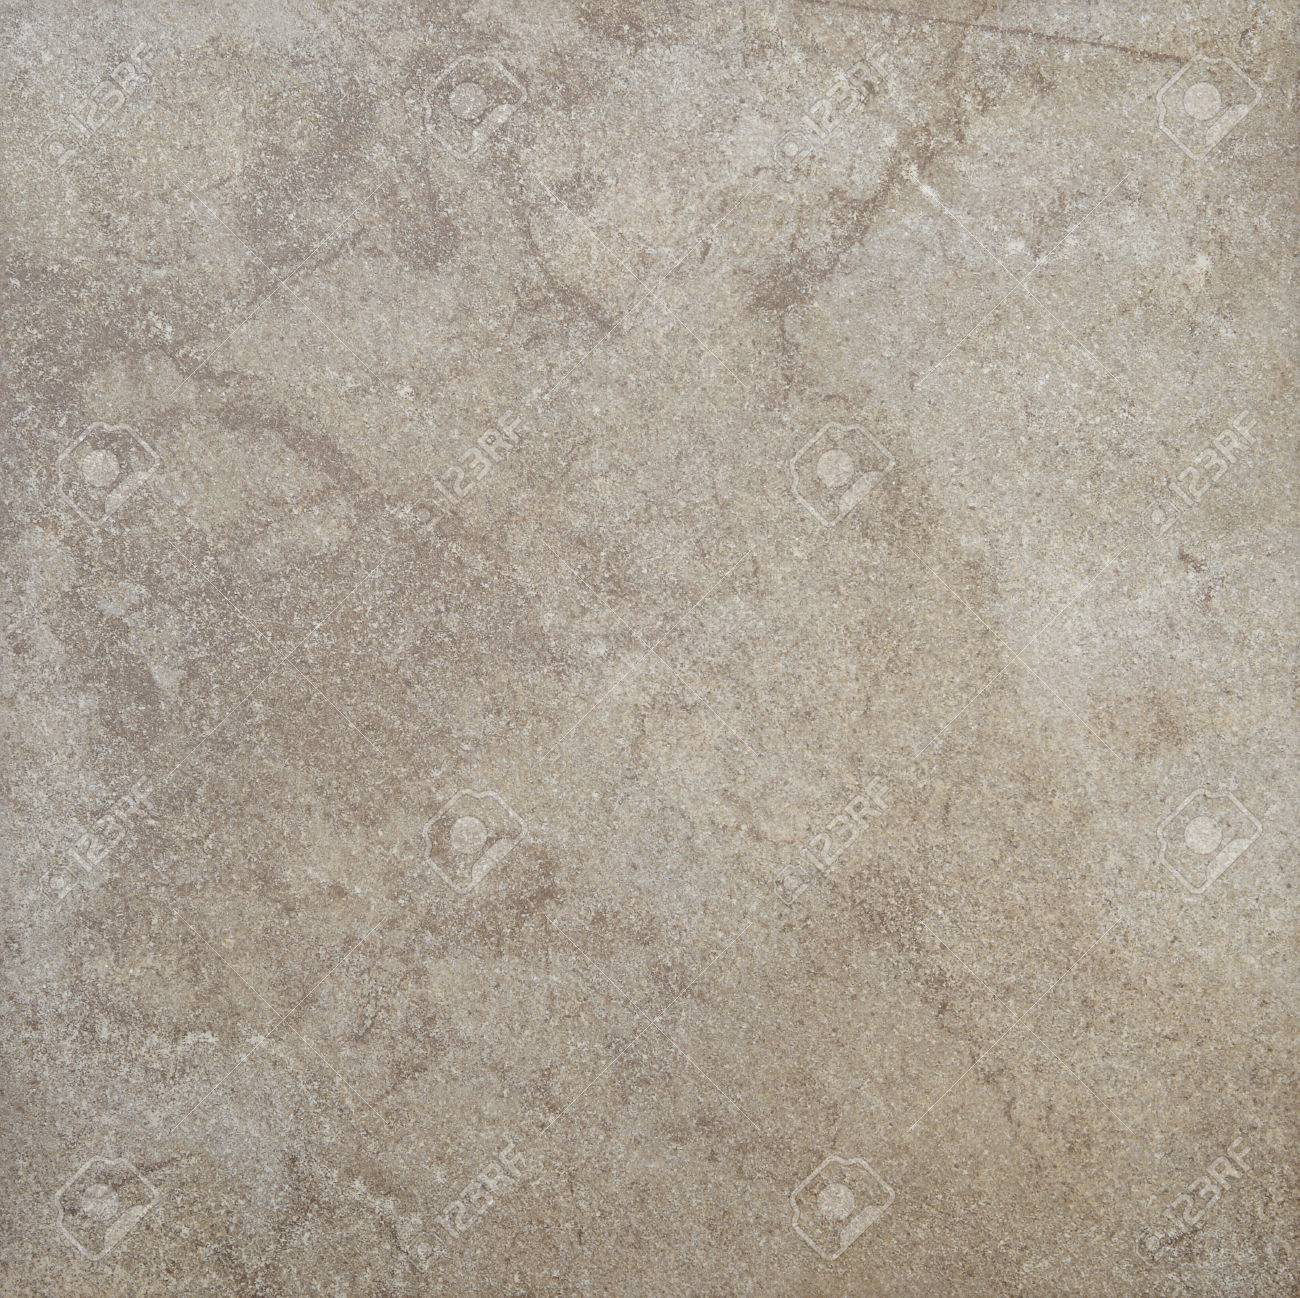 marble tile floor texture. marble tile texture background Stock Photo  23115669 Marble Tile Texture Background Picture And Royalty Free